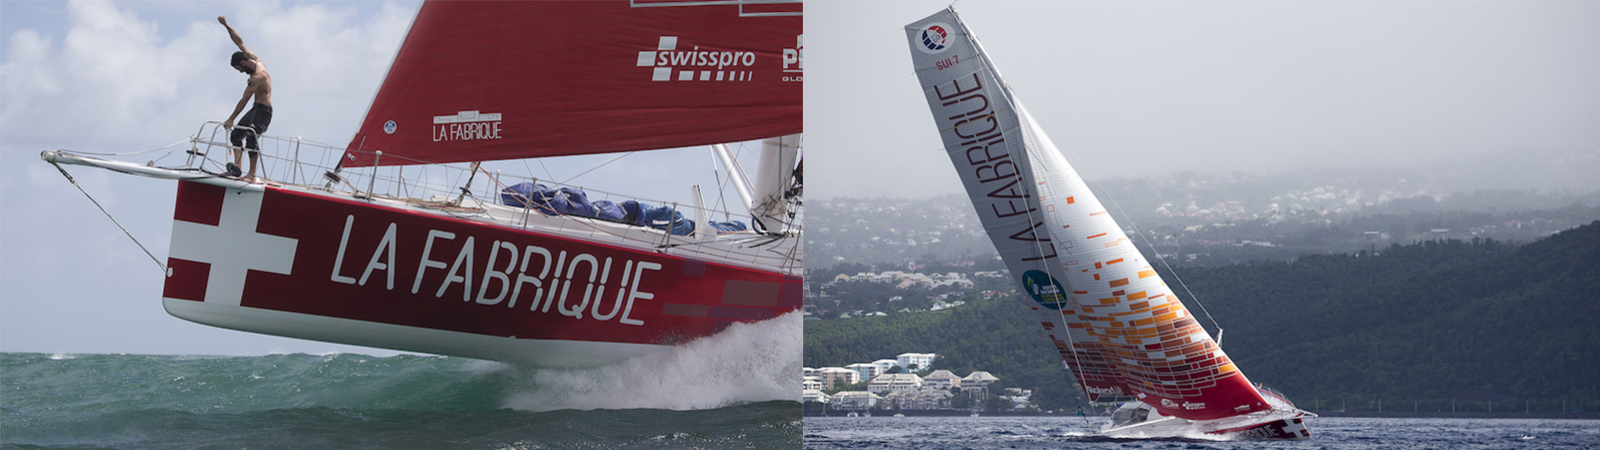 La Fabrique sailing team, Alan Roura